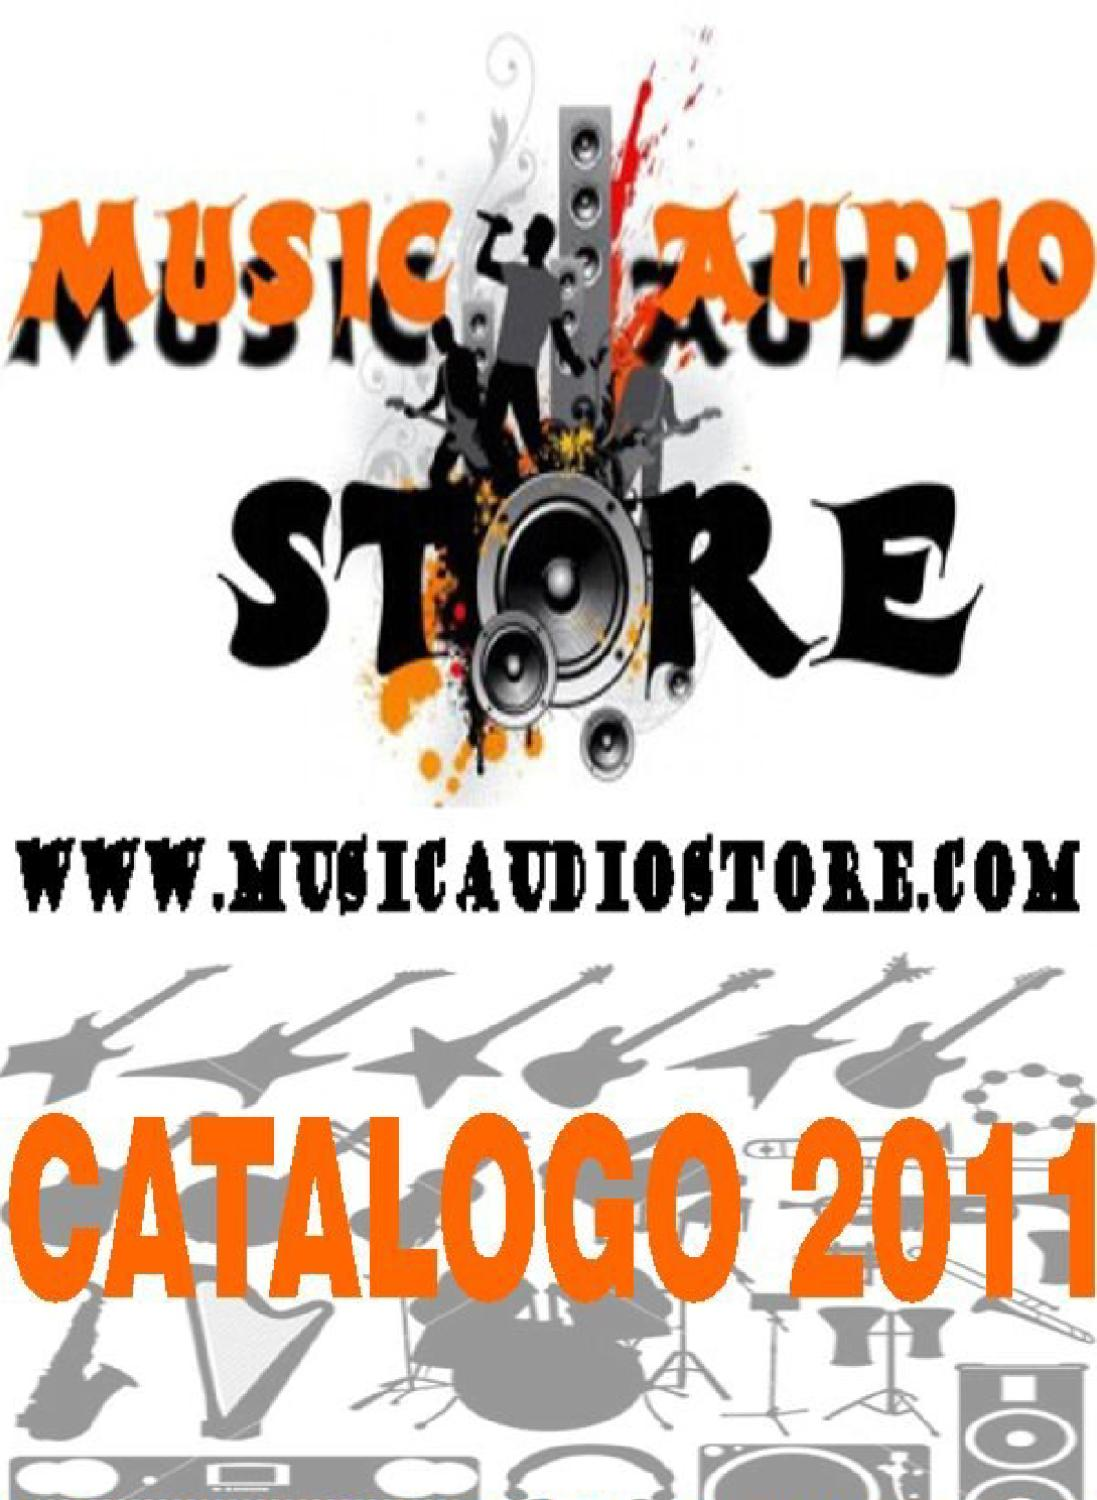 Chitarre Bassi Accessori Musicaudiostorecom By Music Free Download Inf4 Wiring Diagram Audiostore Issuu